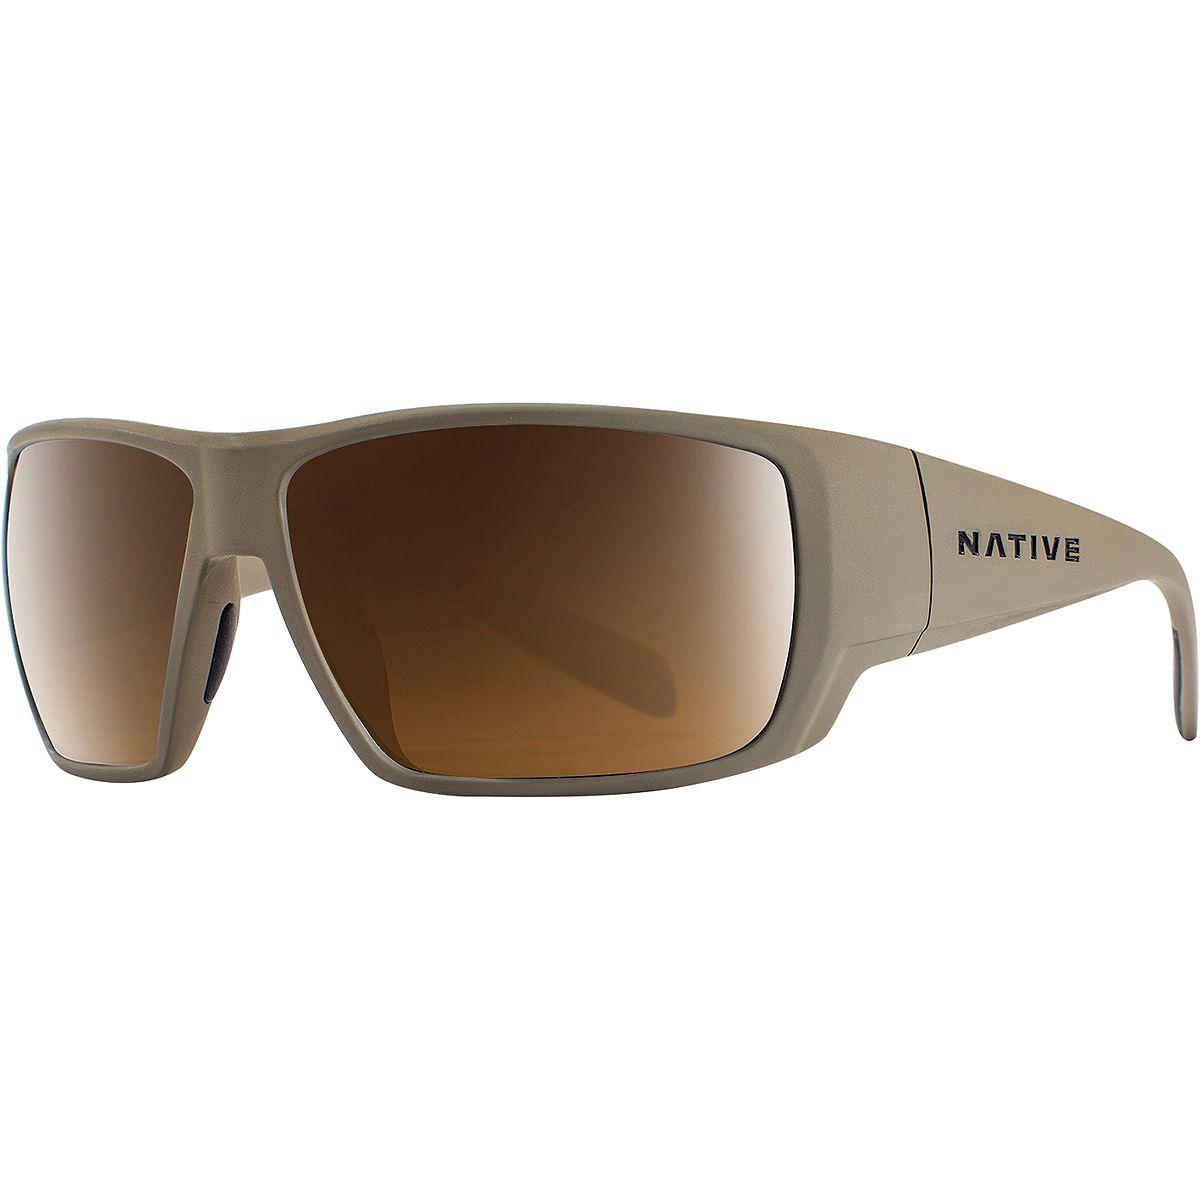 8fb46abadac Lyst - Native Eyewear Sightcaster Polarized Sunglasses in Brown for Men